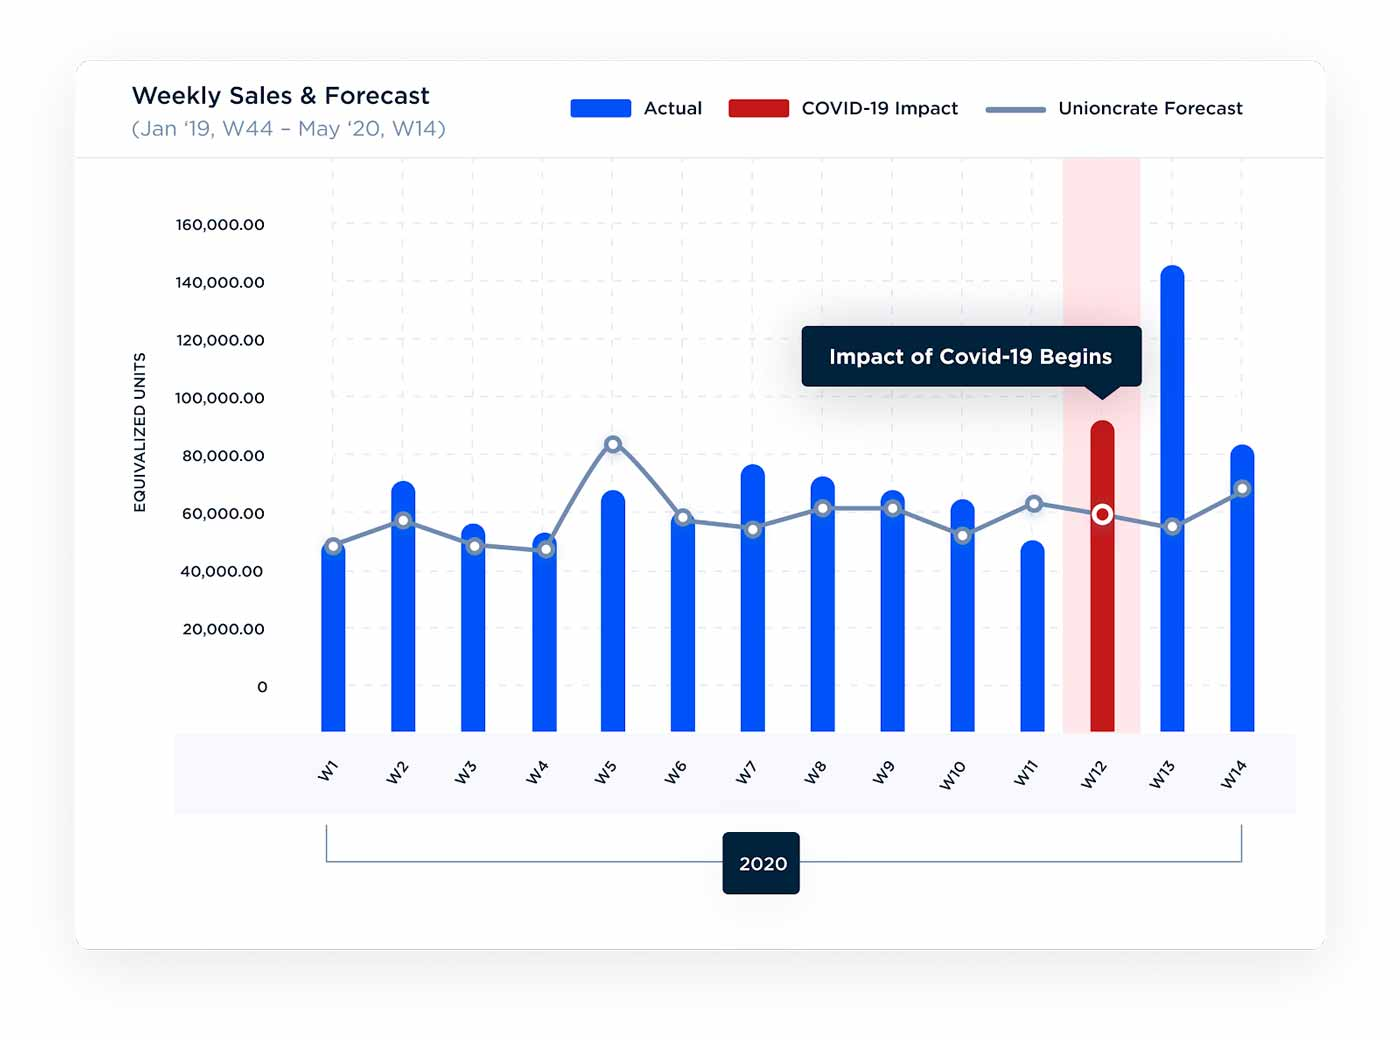 Screenshot of Unioncrate's Weekly Sales & Forecast, showing where the impact of Covid-19 begins